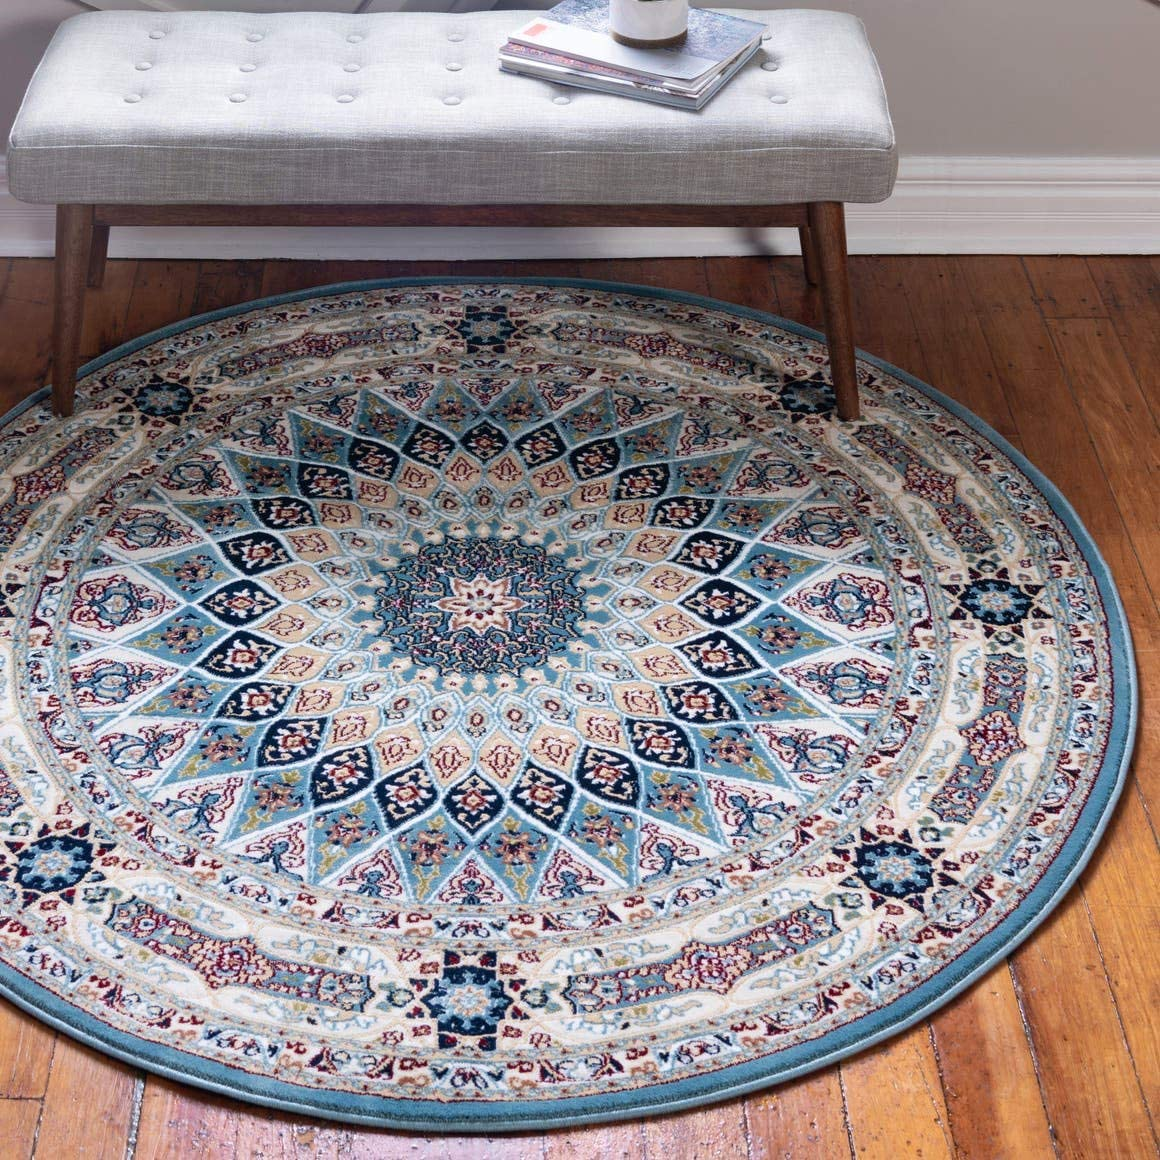 Unique Loom Narenj Collection Classic Traditional Medallion Textured Blue Round Rug 10 0 x 10 0